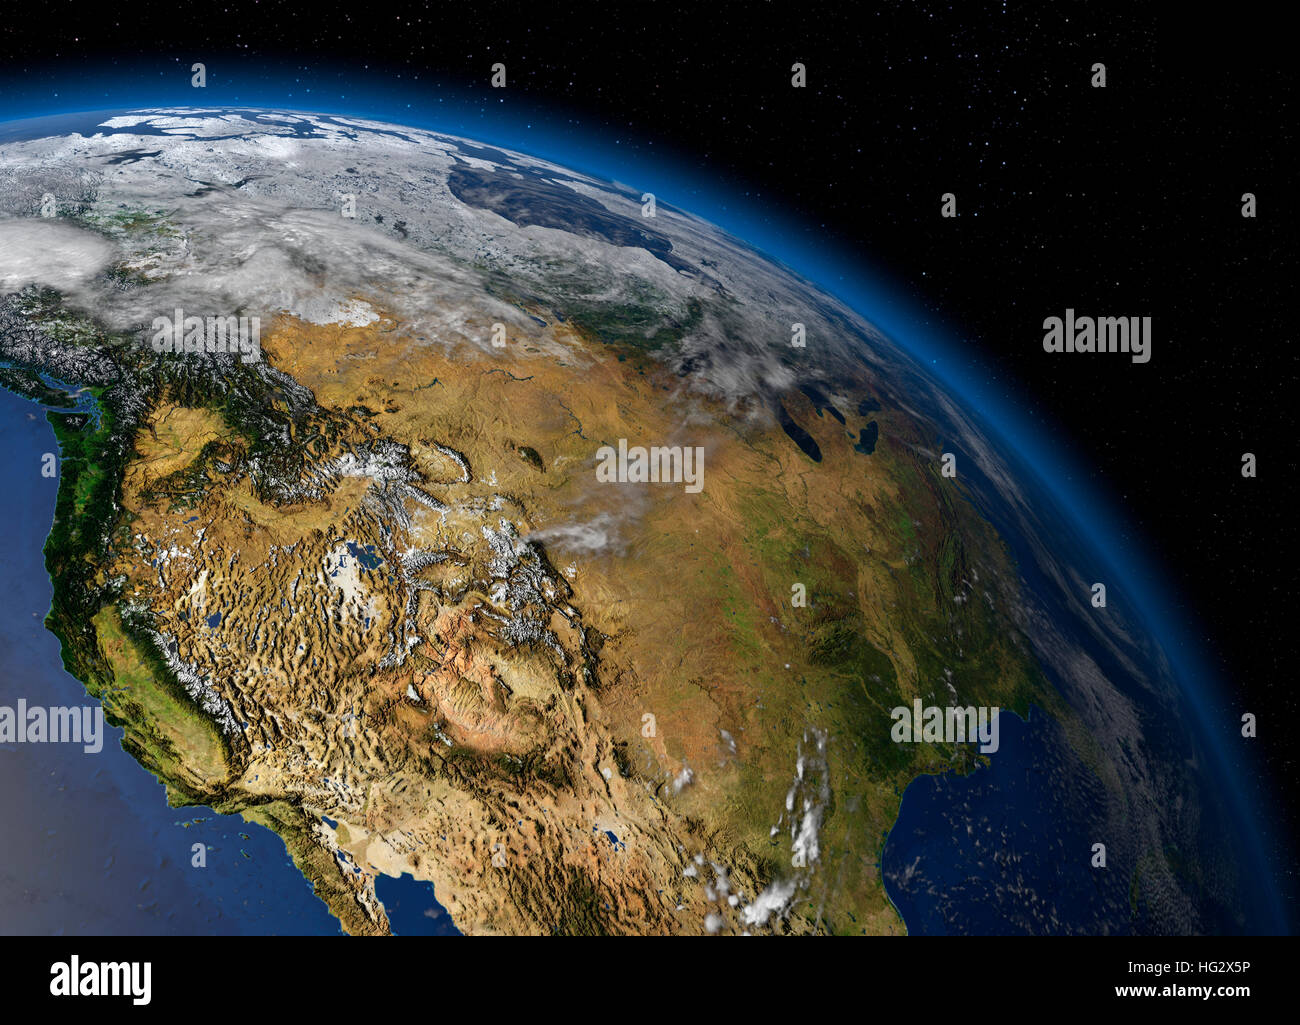 Earth viewed from space showing the West Coast of the ...